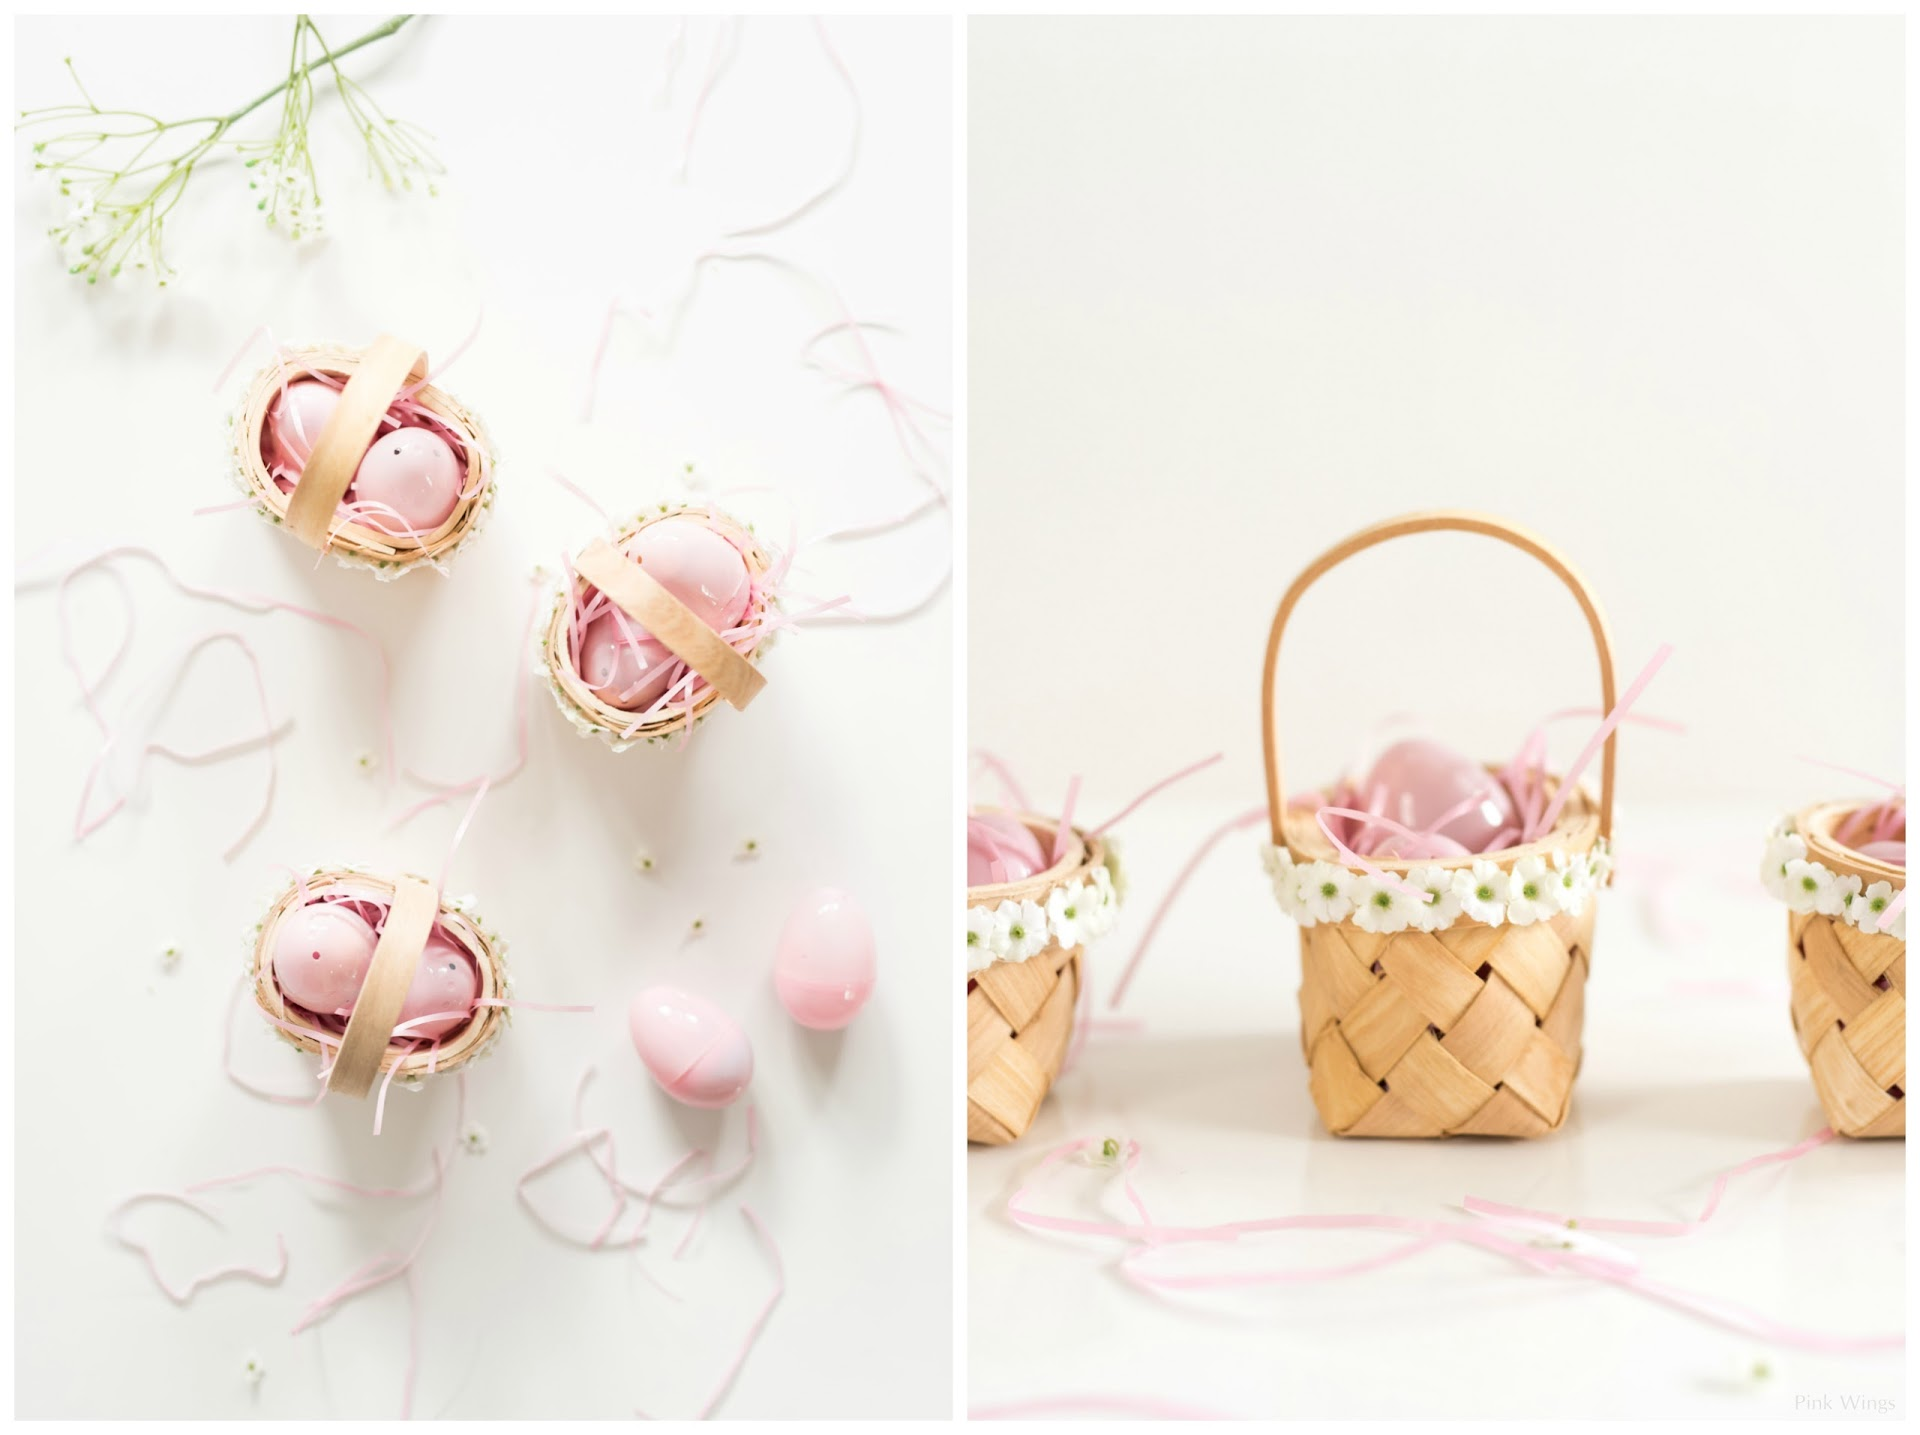 mini easter baskets, little easter baskets, tutorial, easter gift ideas, easter gifts for adults, homemade, easter gifts for teenagers, adults, kids, men, lds craft blog, easter craft ideas, craft blogger, diy easter